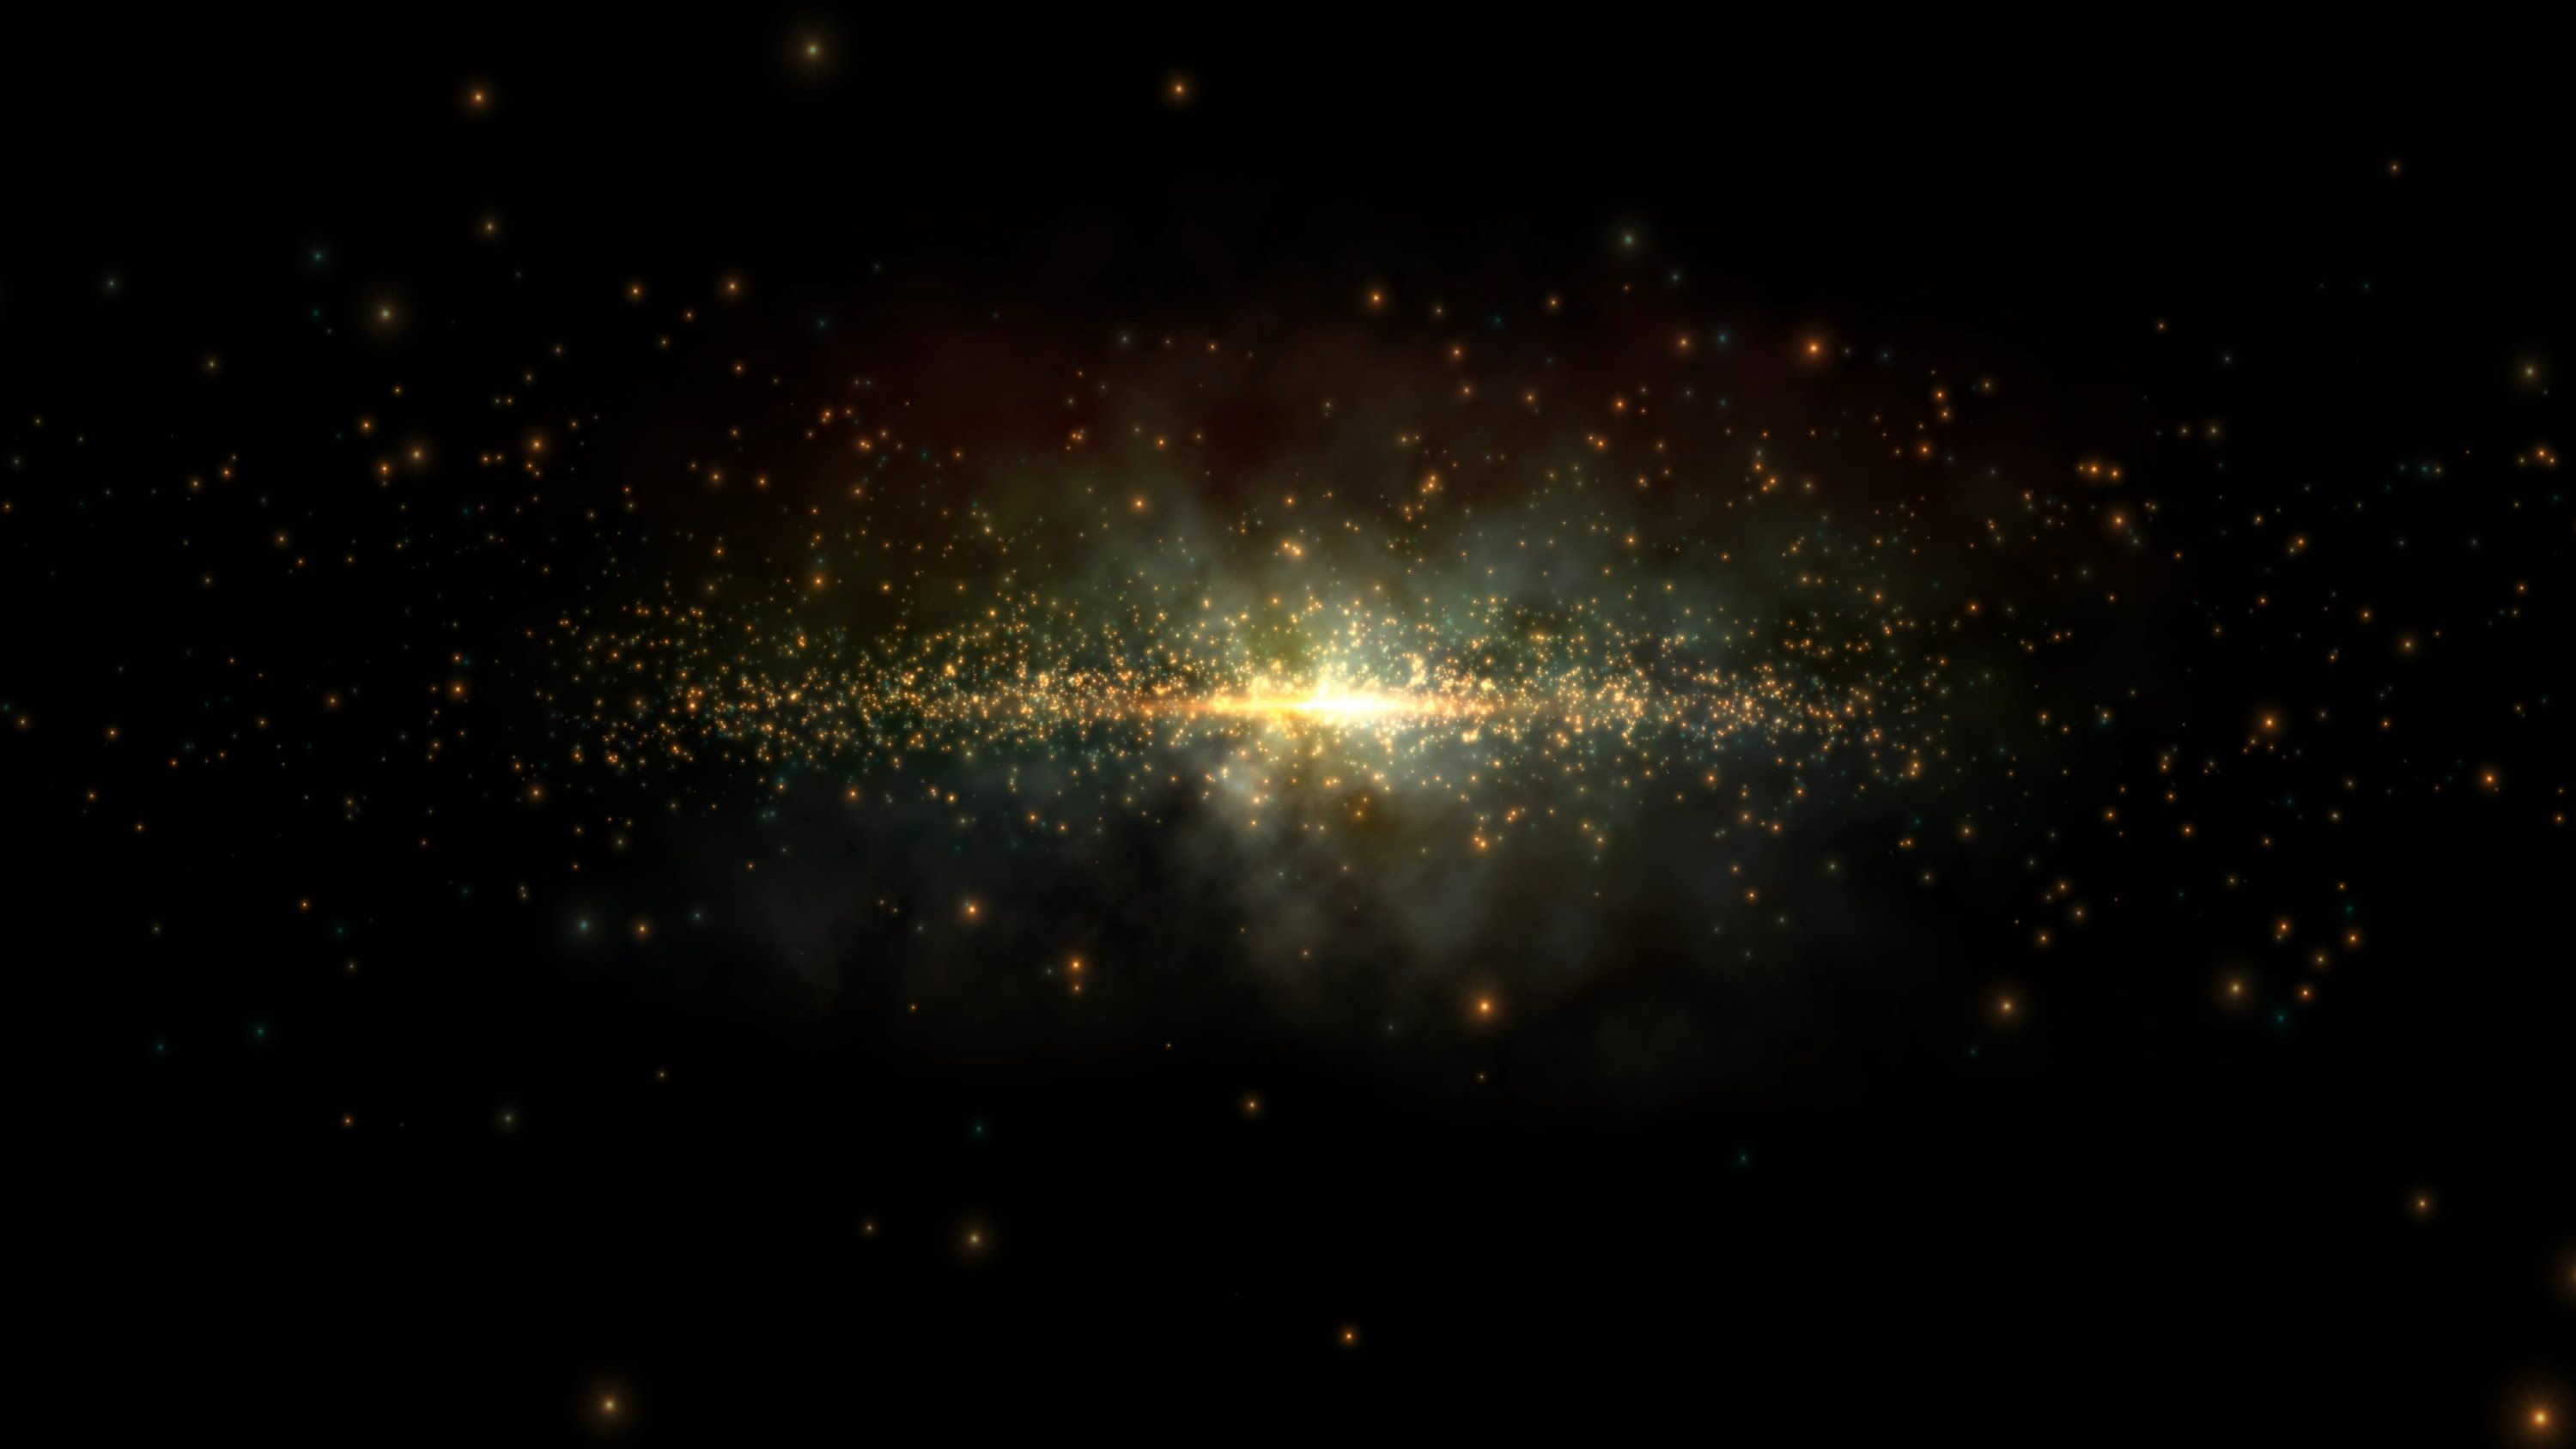 Animation Overlay Cool Wallpaper Hd Backgrounds Space Stars